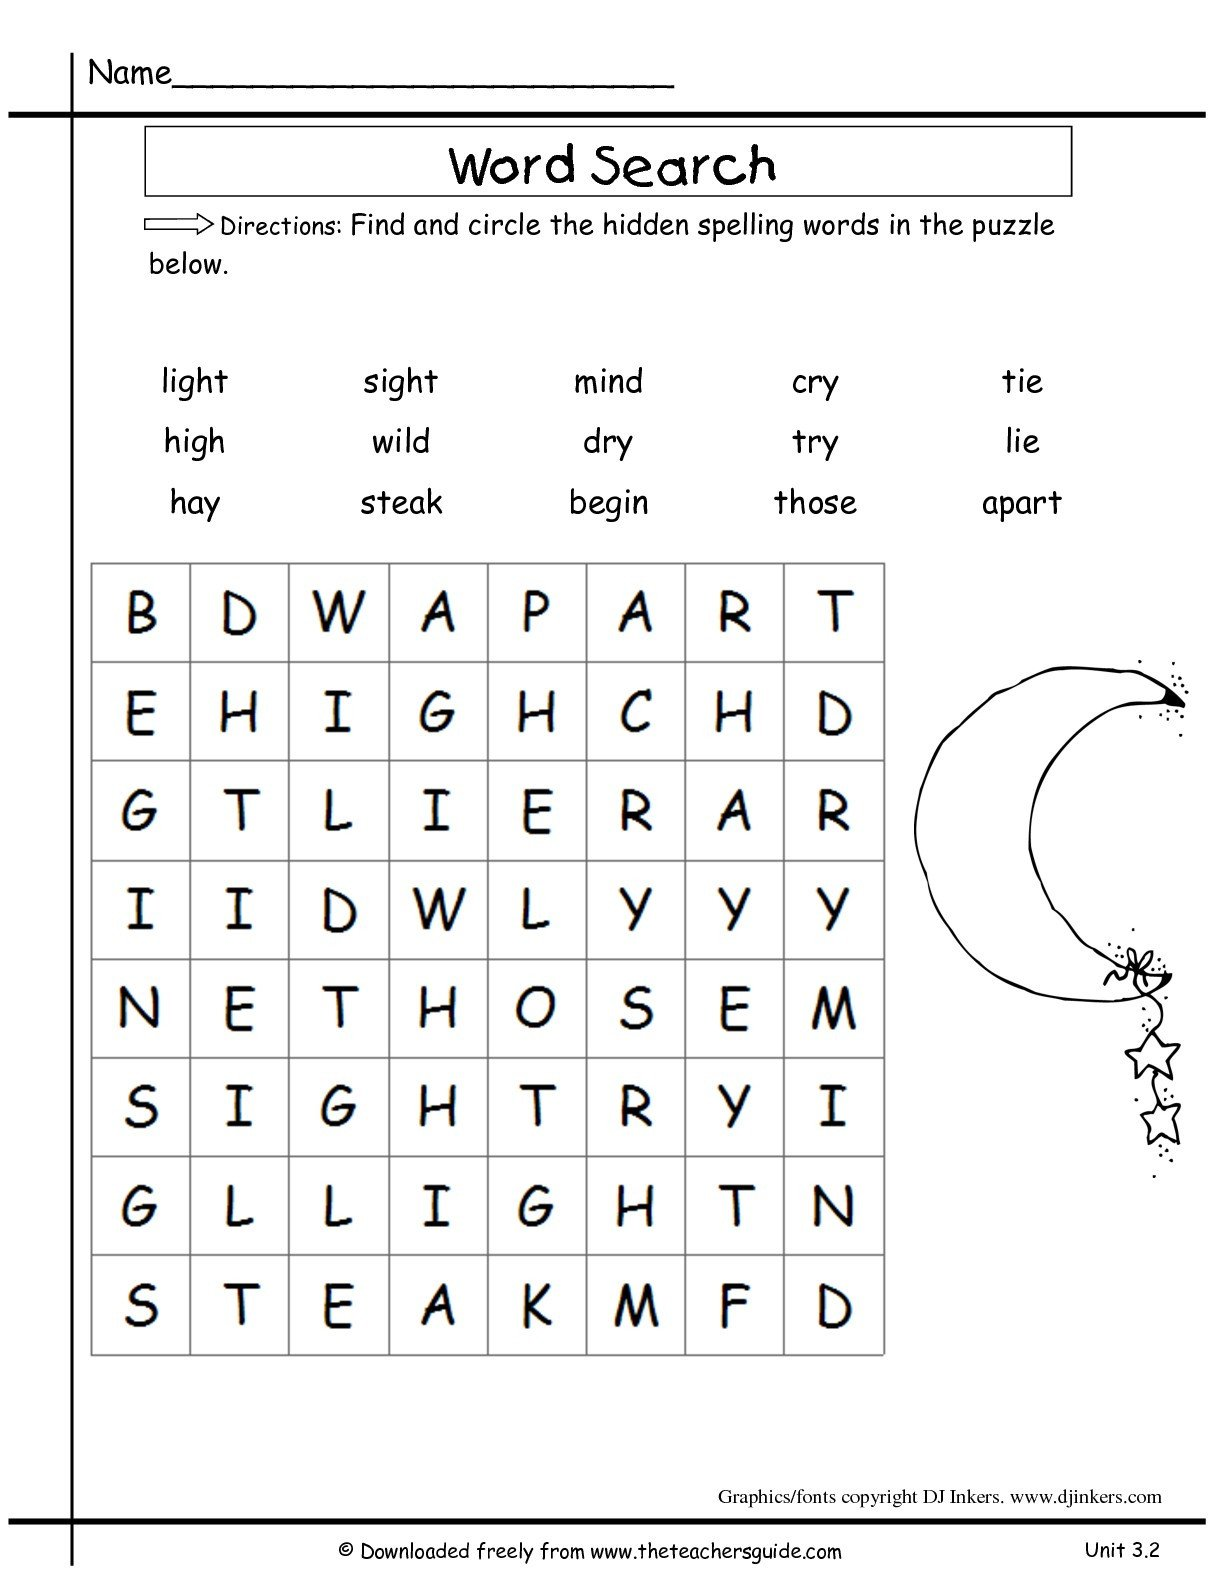 Free Syllable Worksheets for Kindergarten Math Worksheet Marvelous Word Worksheets for 1st Grade